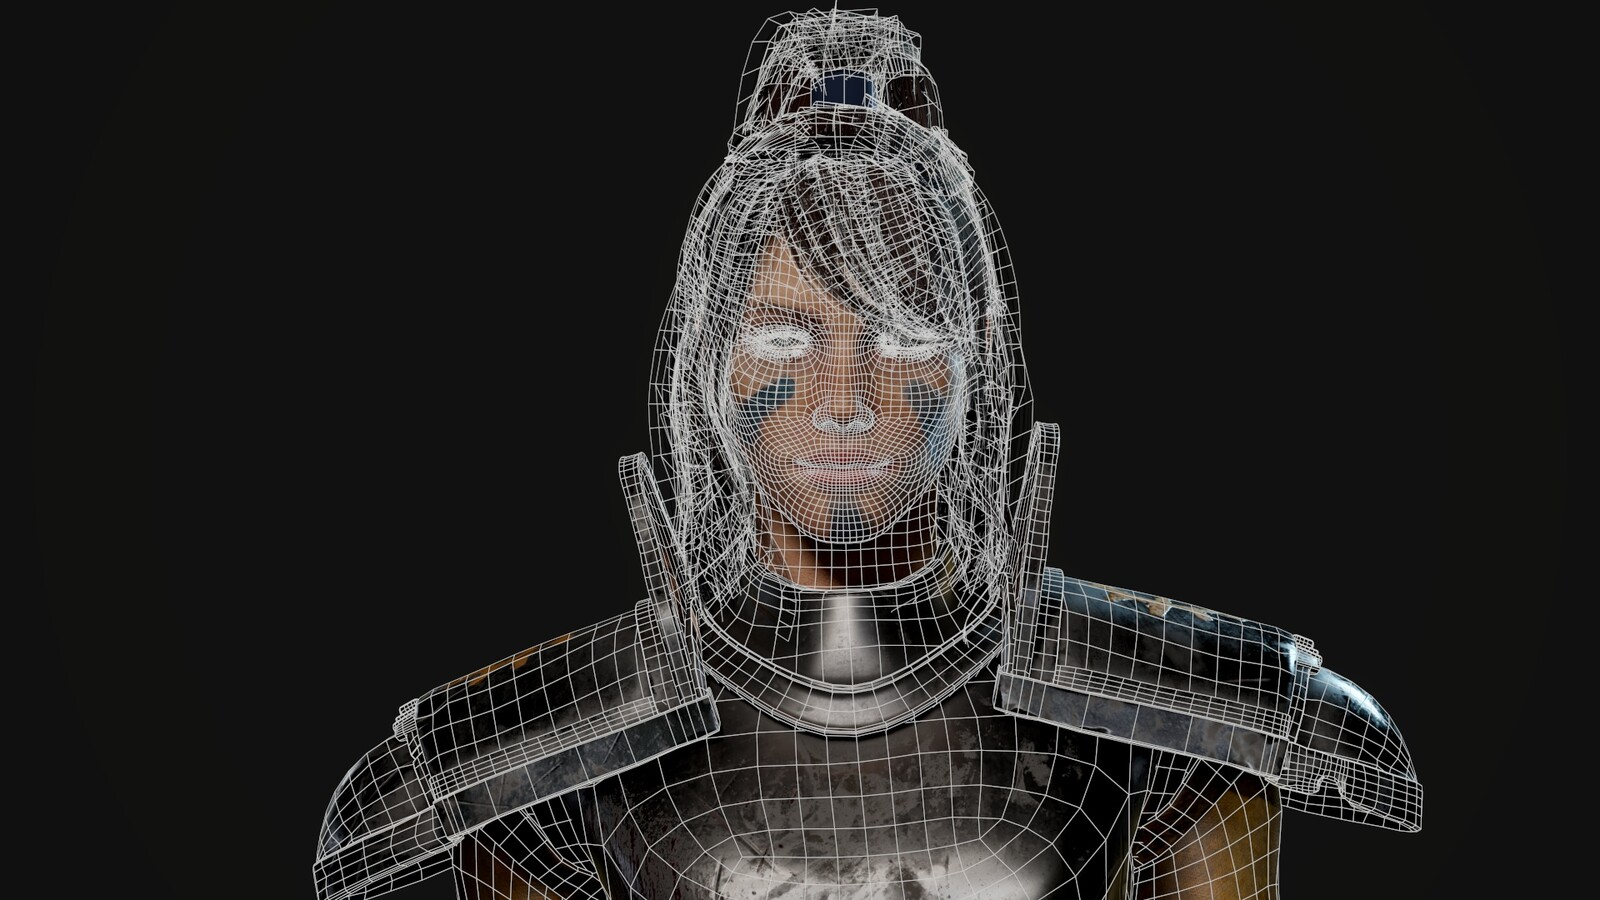 Wireframe close-up on face